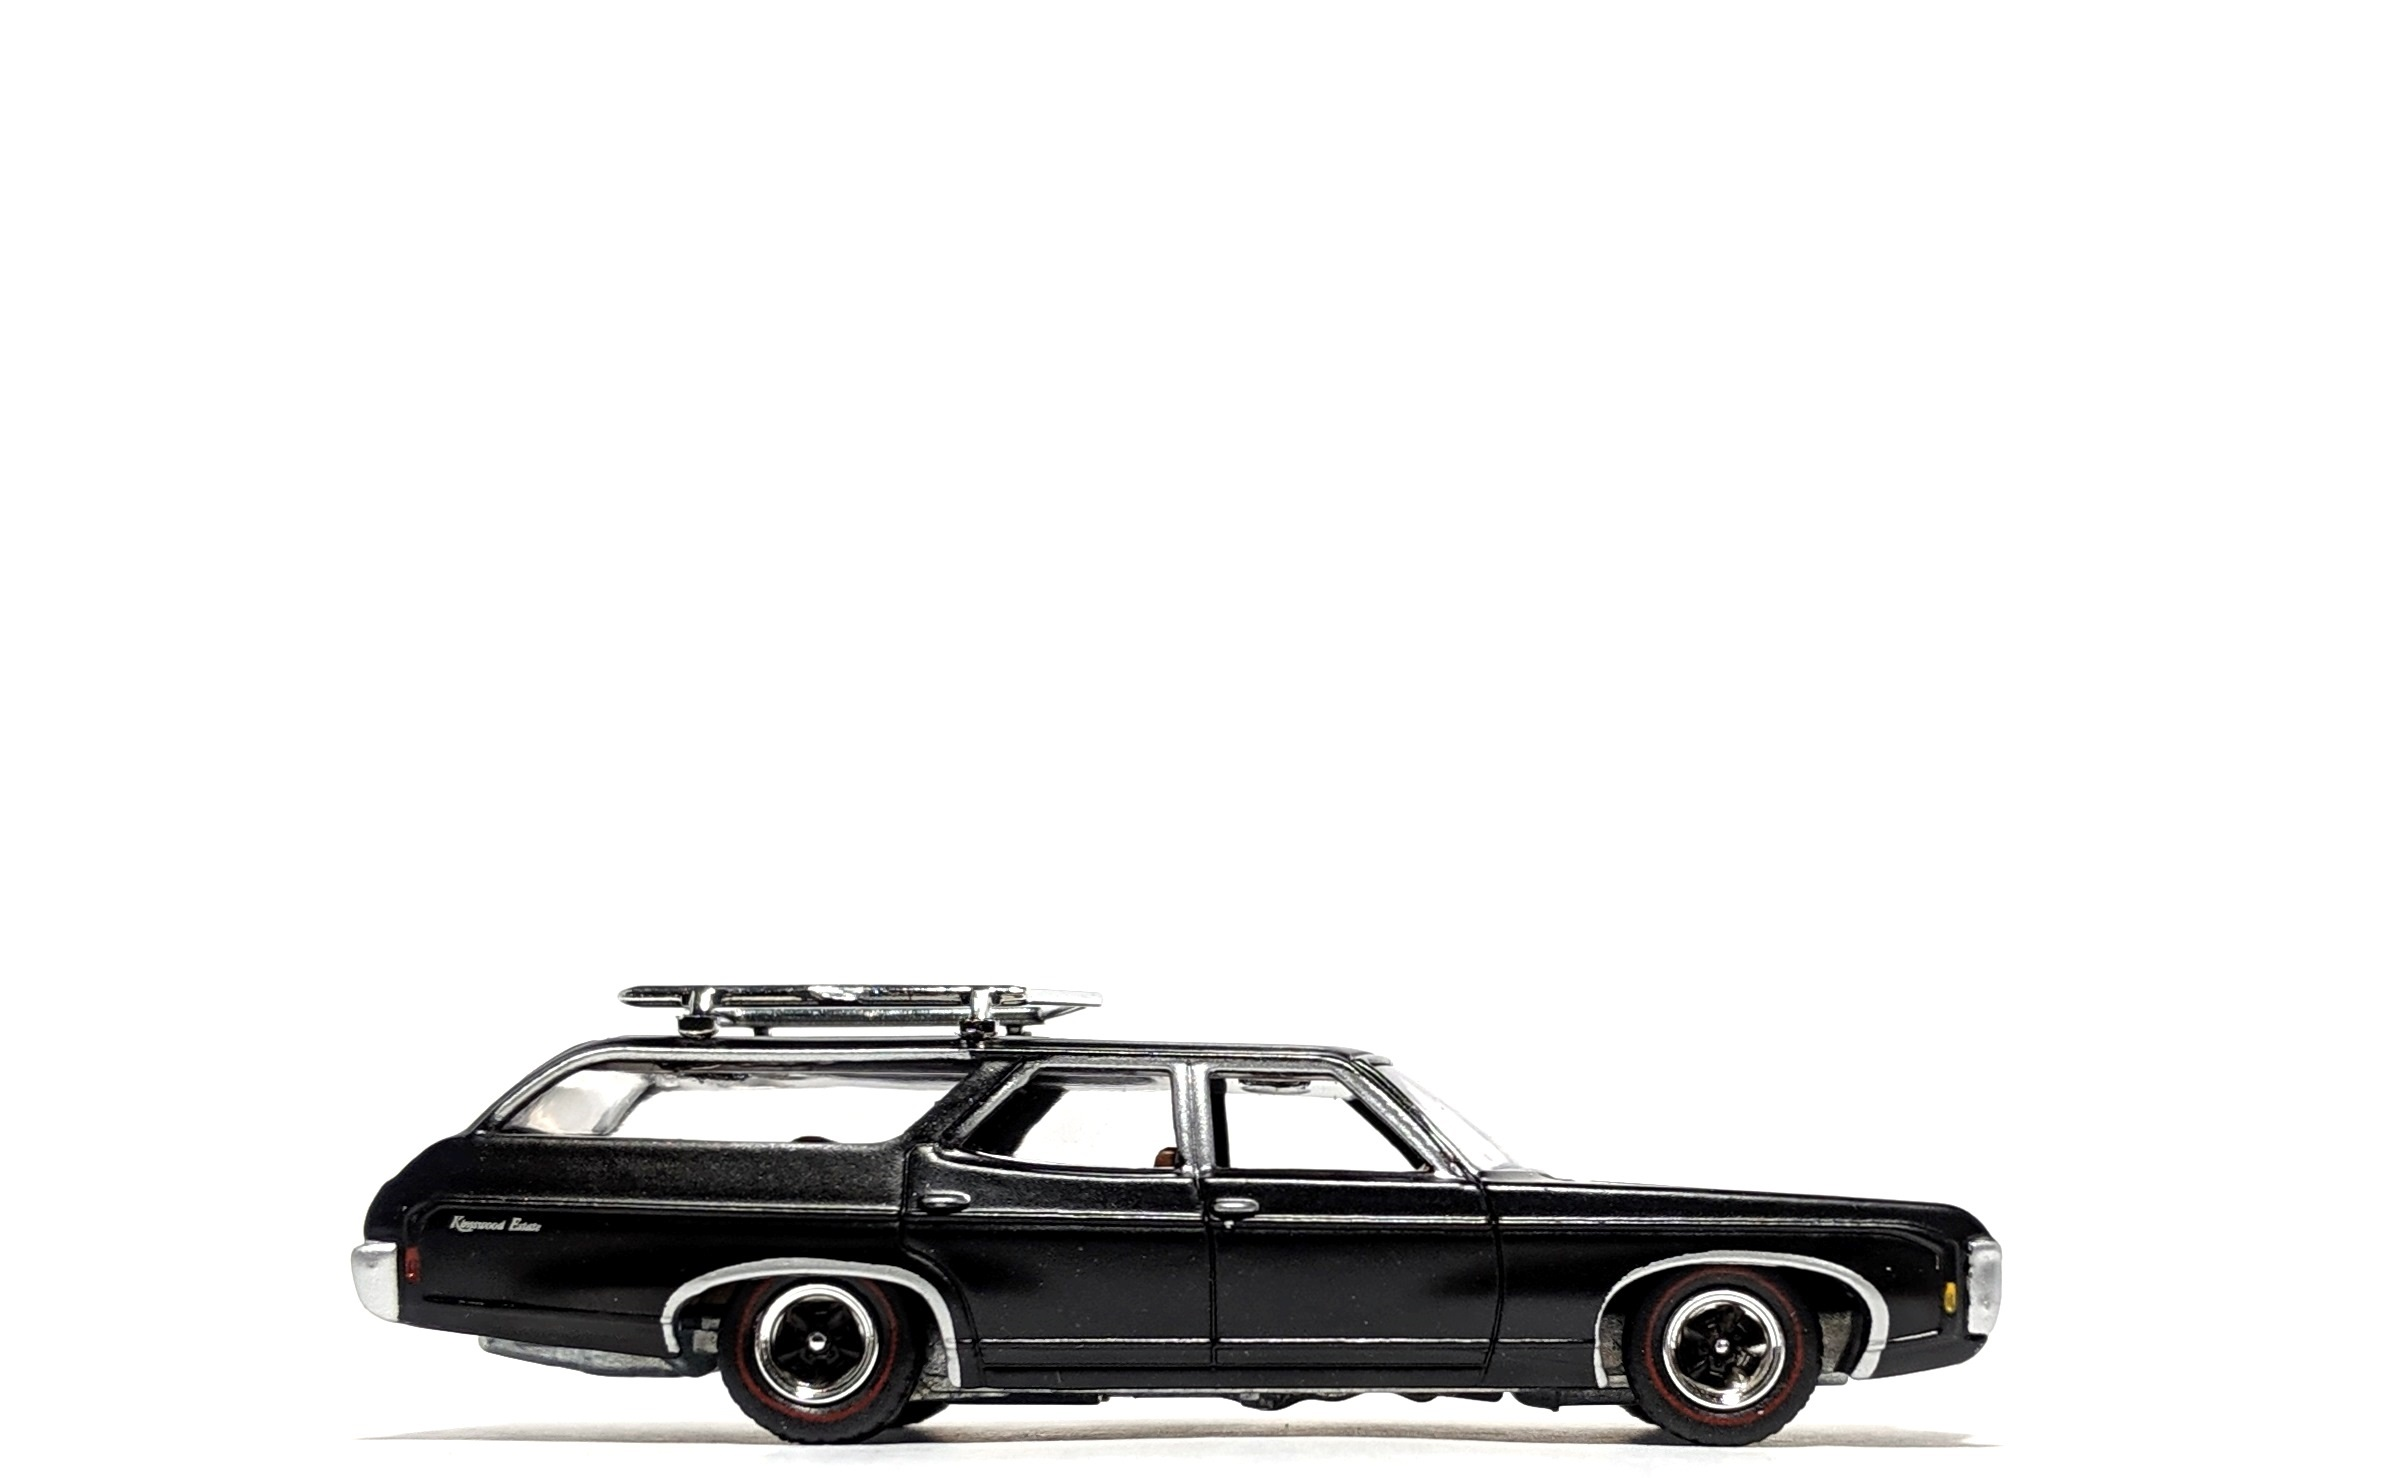 1969 Chevrolet Kingswood Estate Flat Black - Auto World